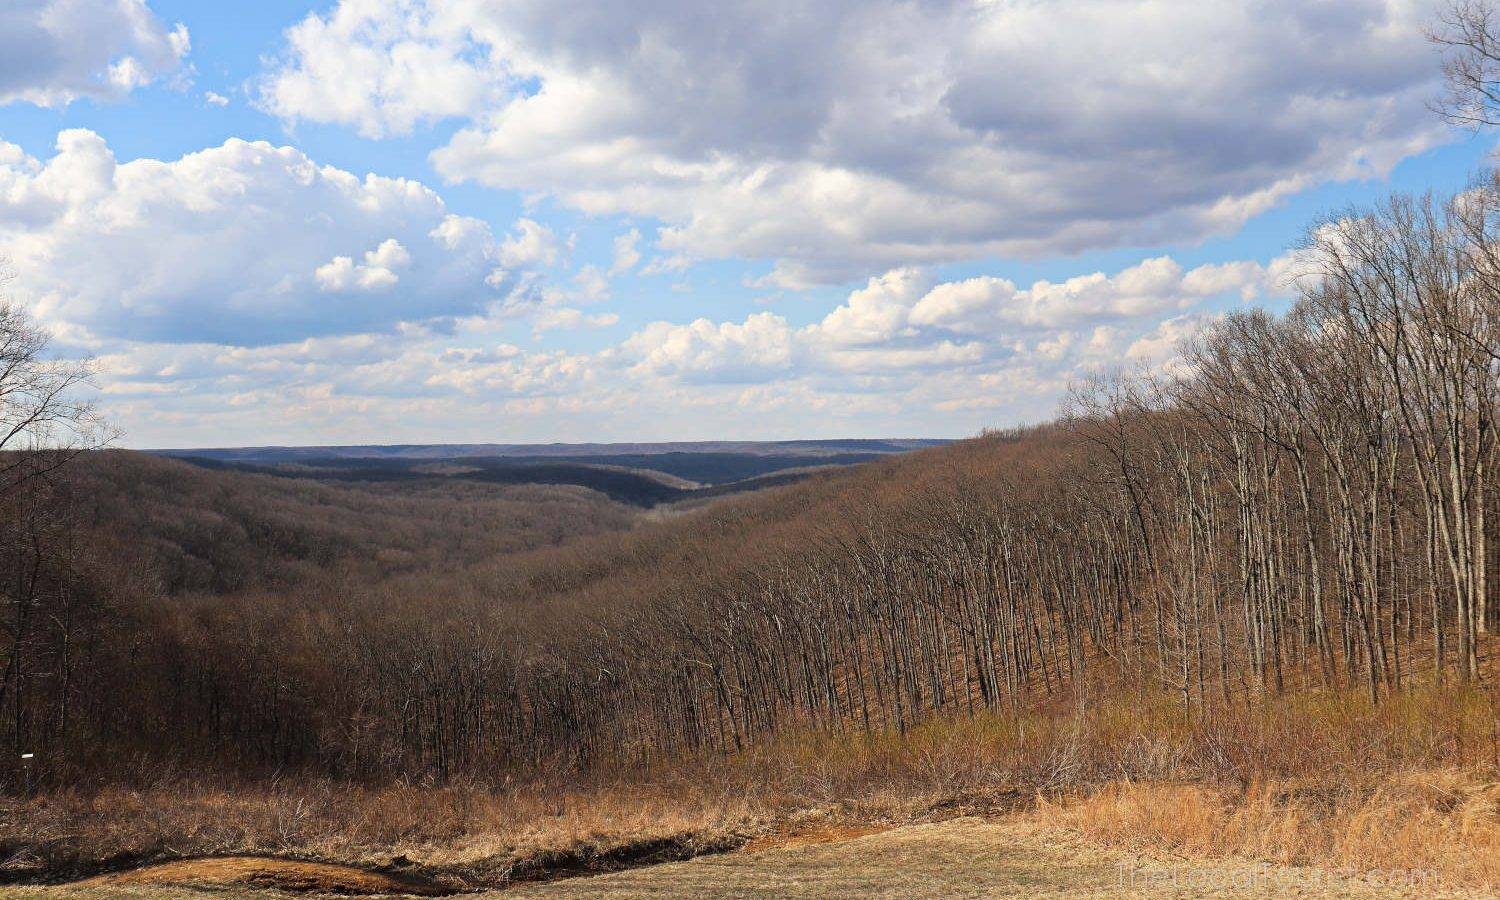 The wooded hills of Brown County